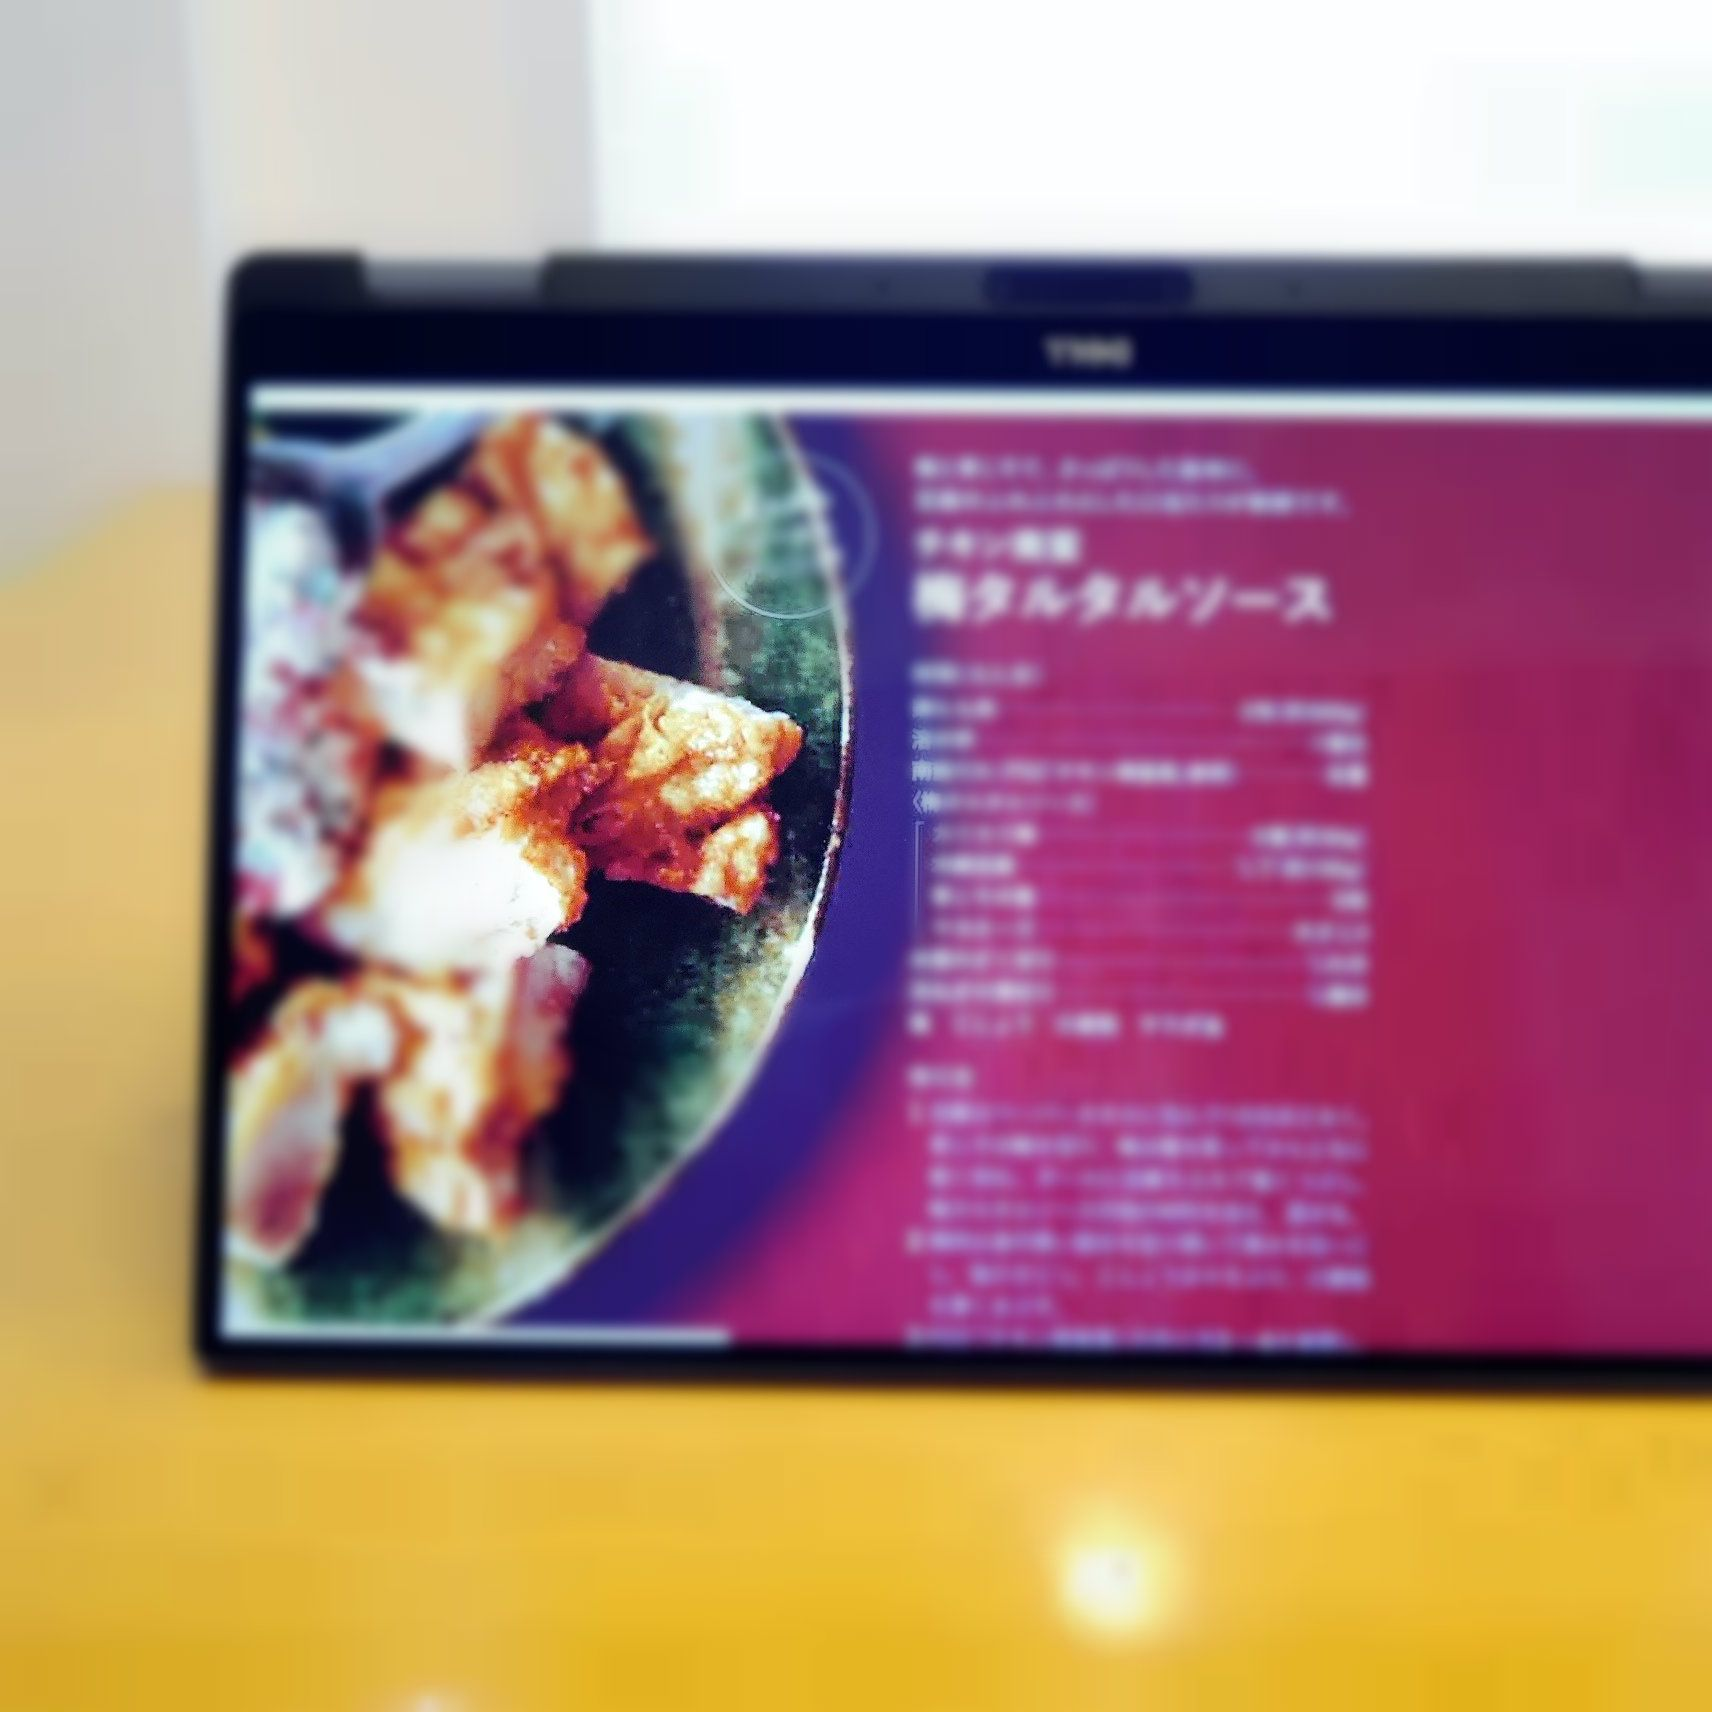 Dell_XPS_テントモード_電子書籍_レシピ本_UP